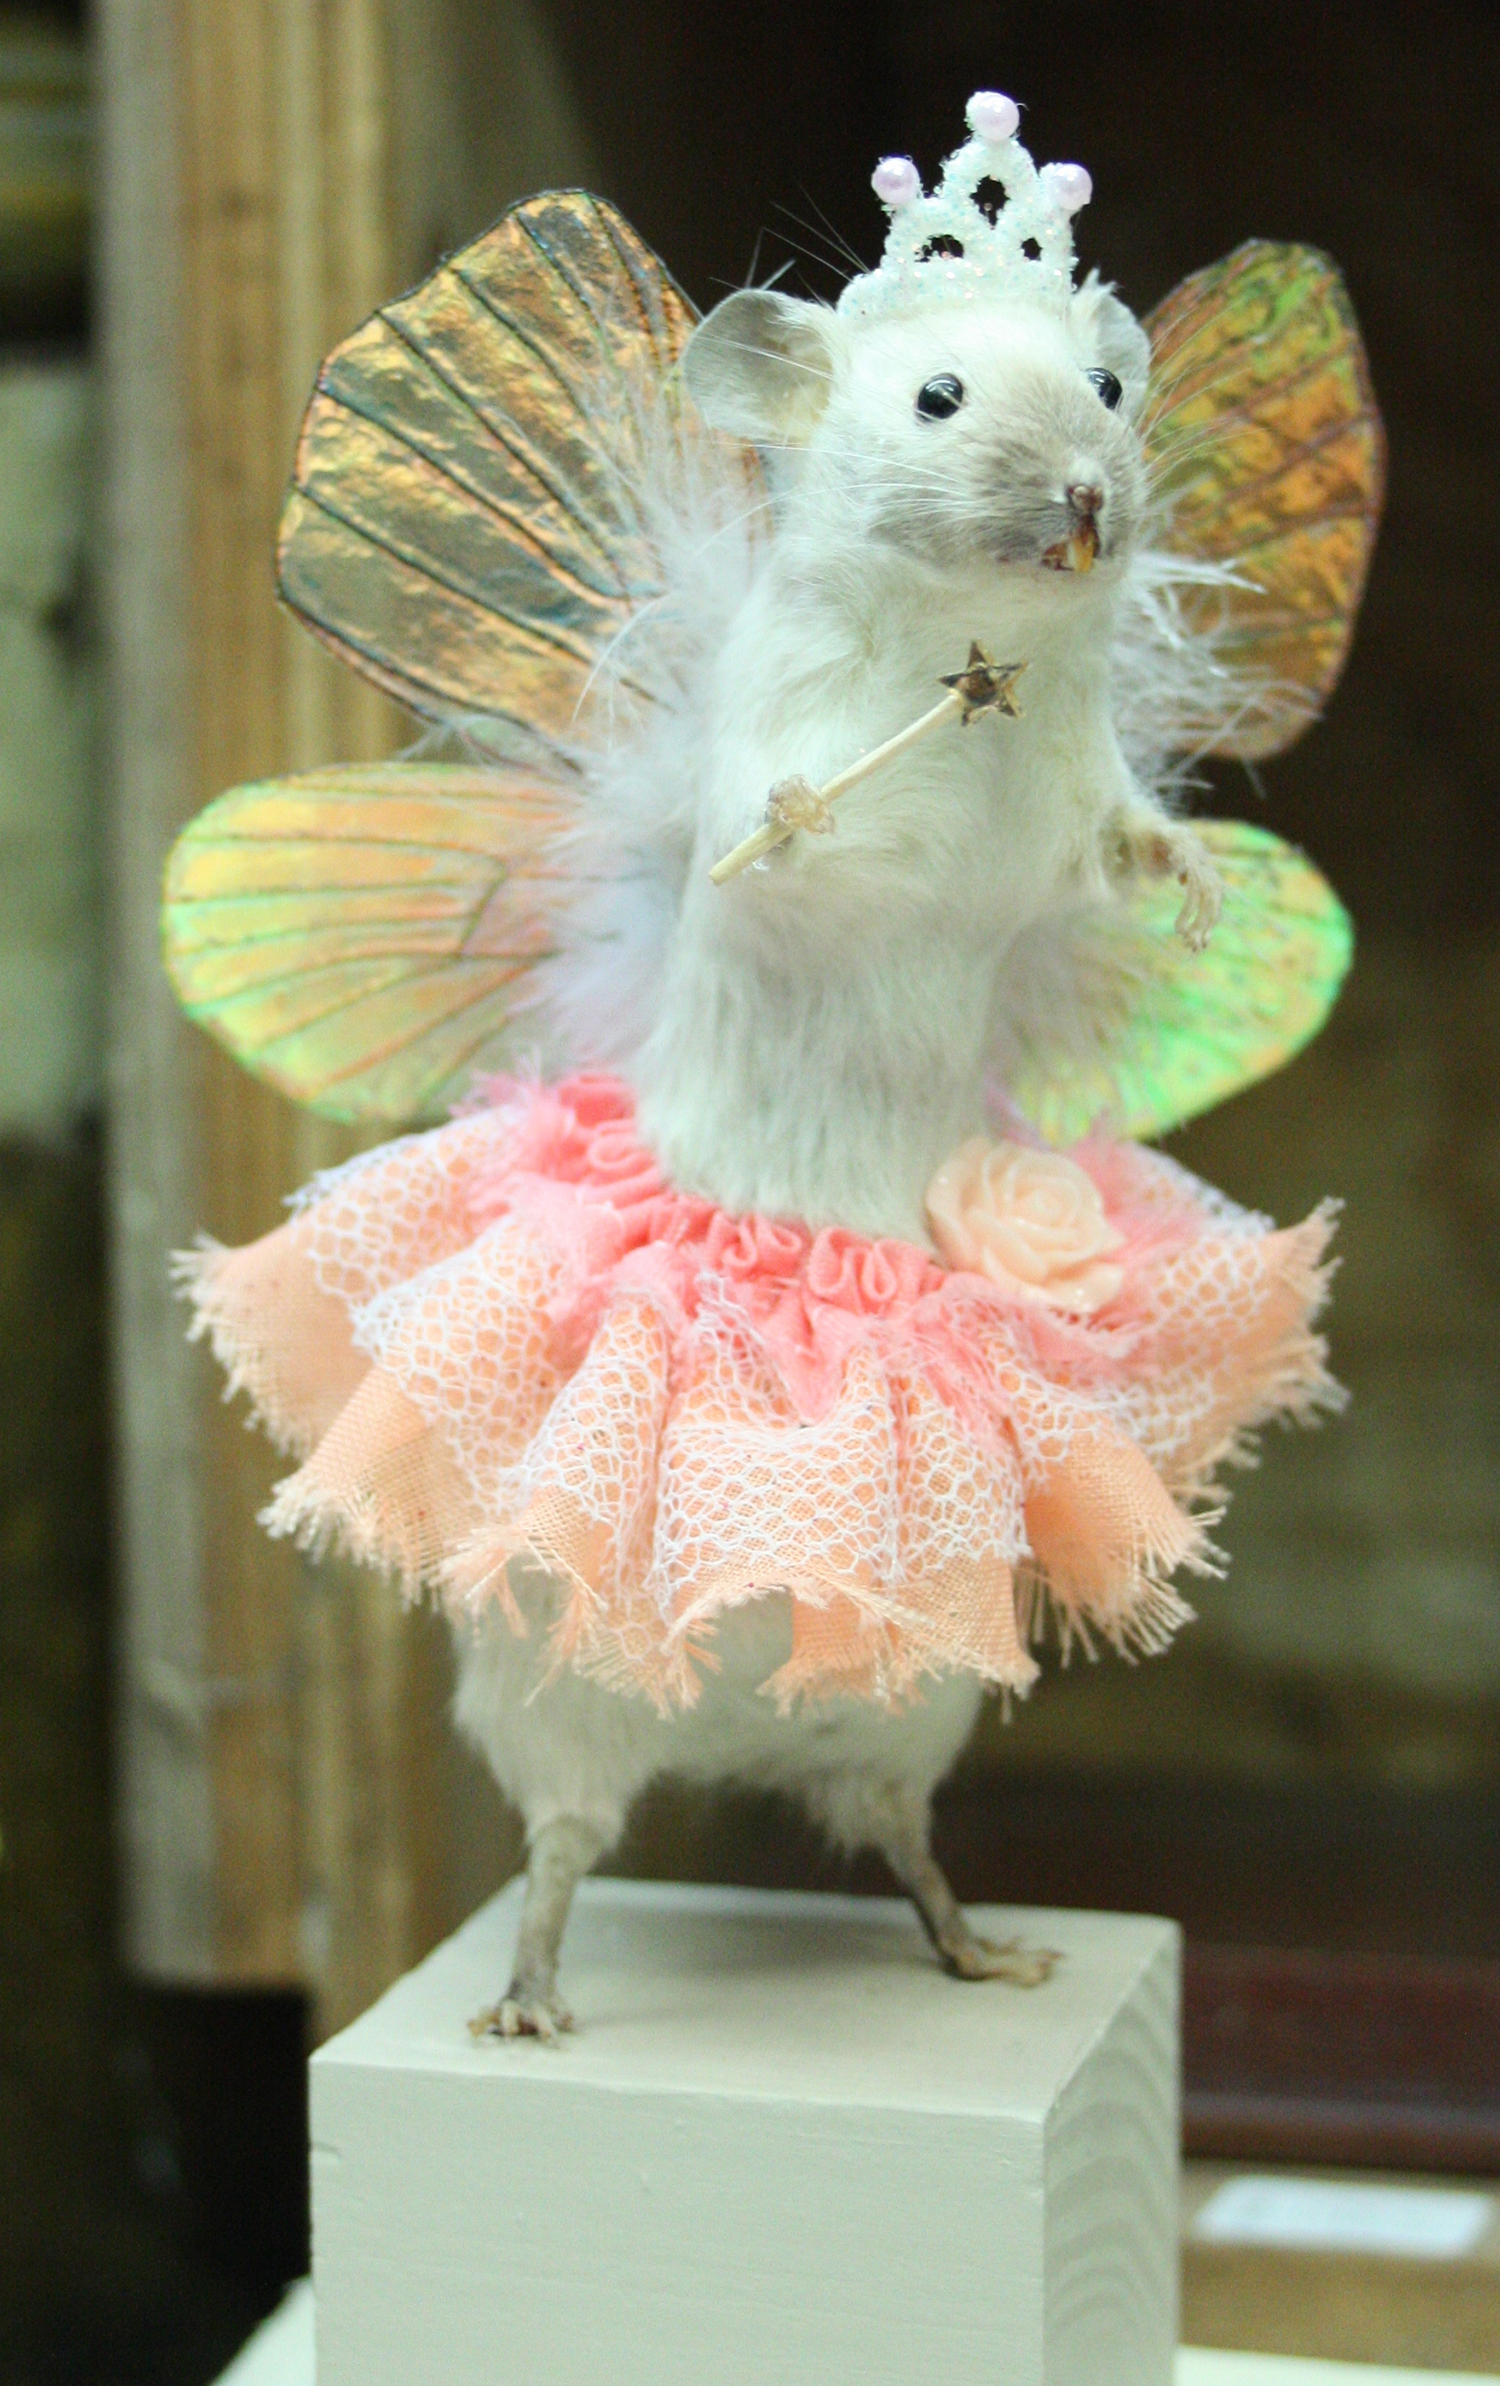 Give me a stuffed rodent in a full ballerina skirt and I'm on board. -